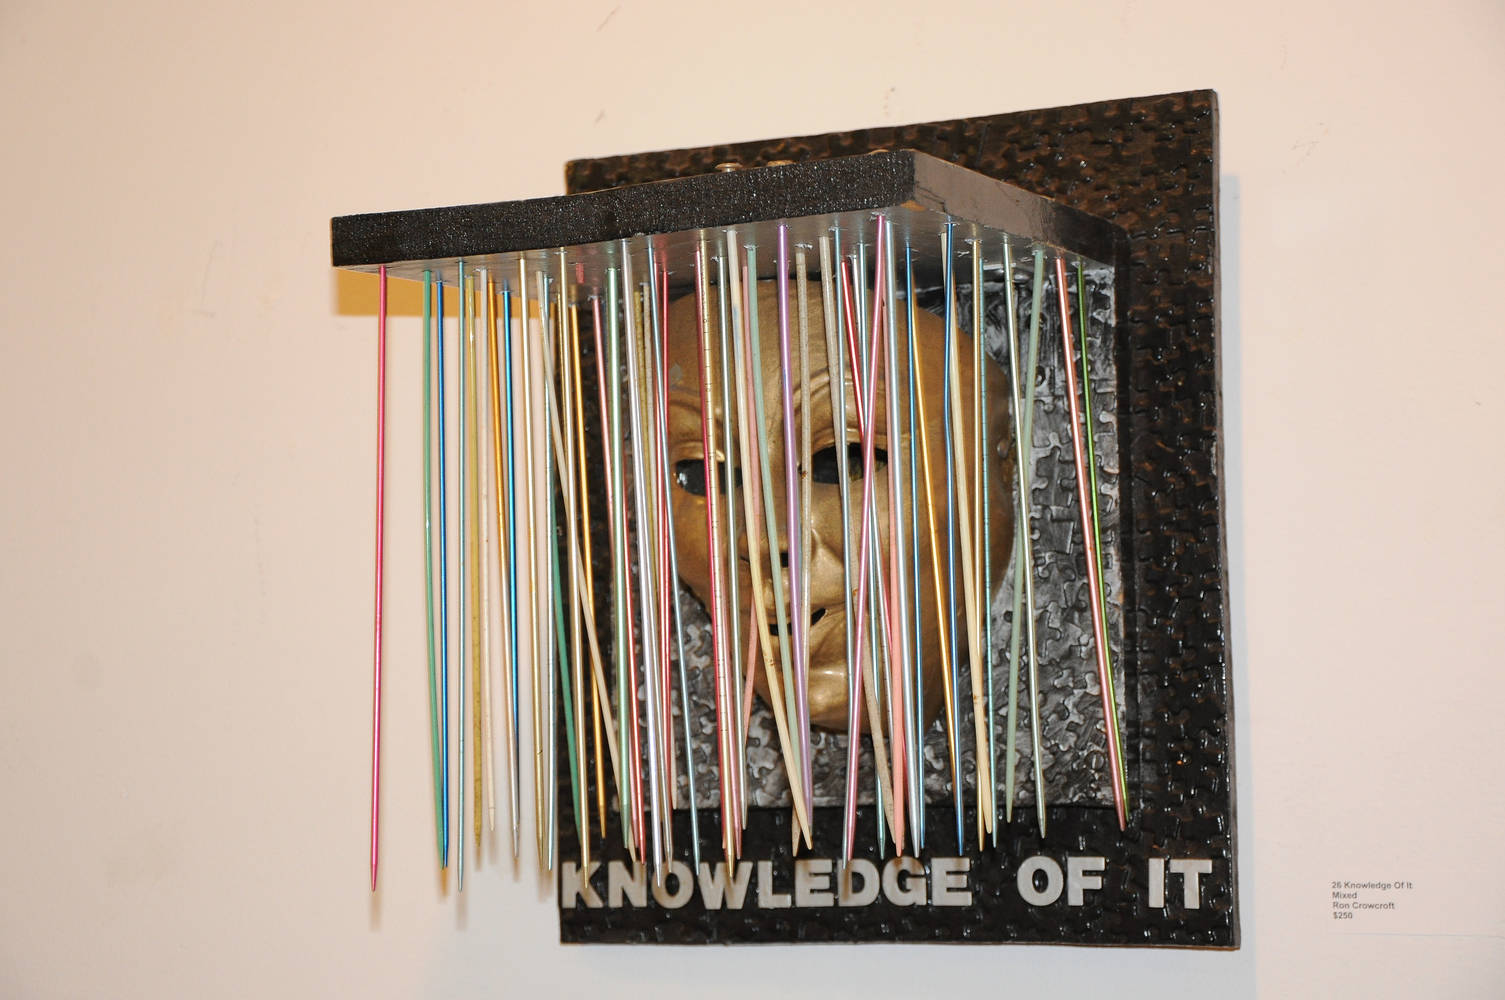 Knowledge Of It by Ron Crowcroft